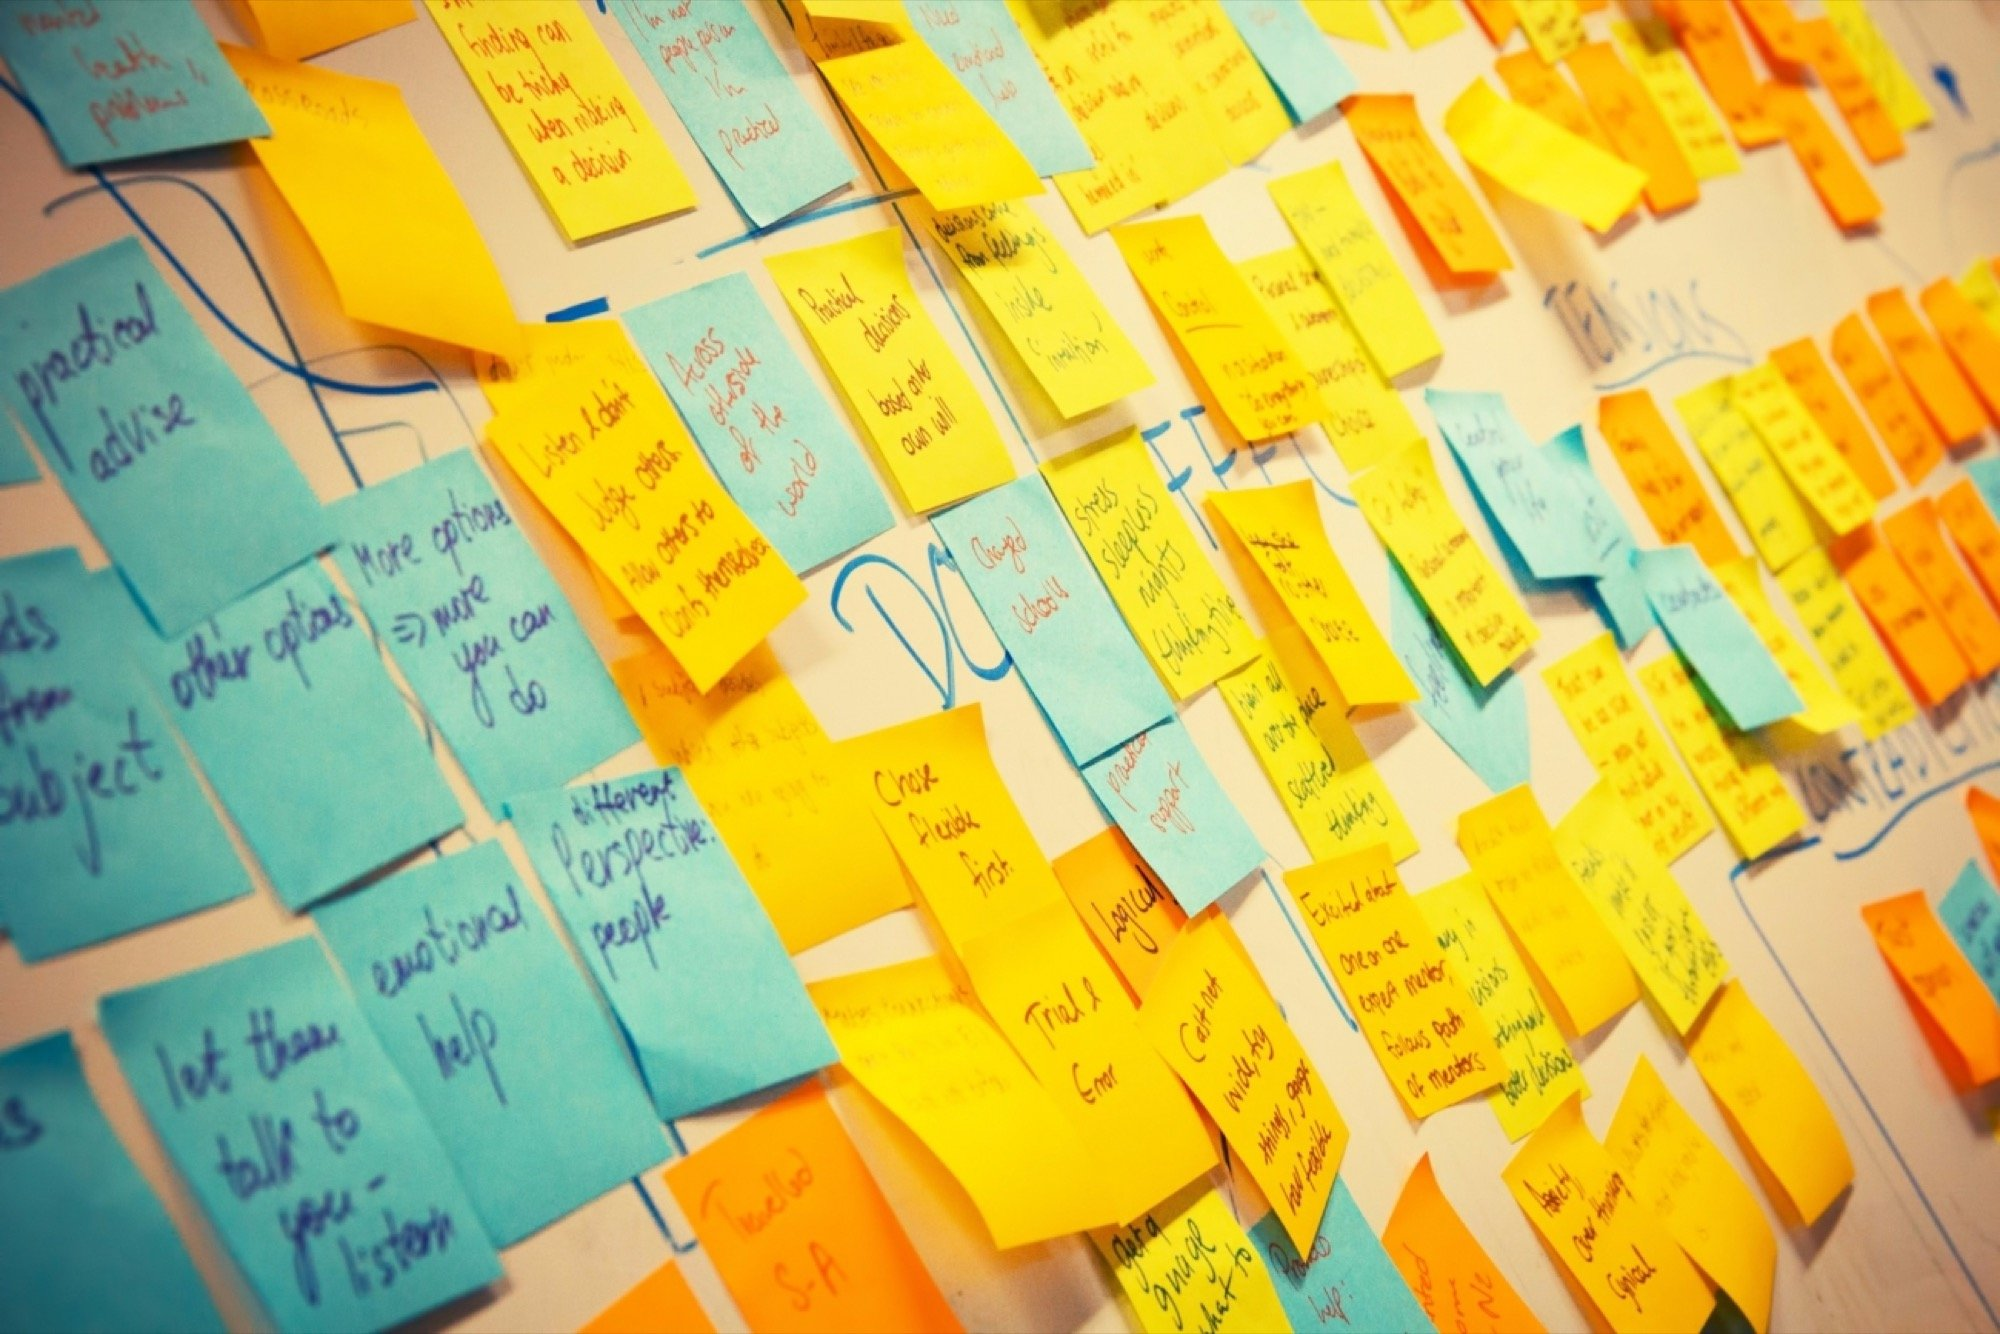 10 Simple Productivity Tips for Organizing Your Work Life